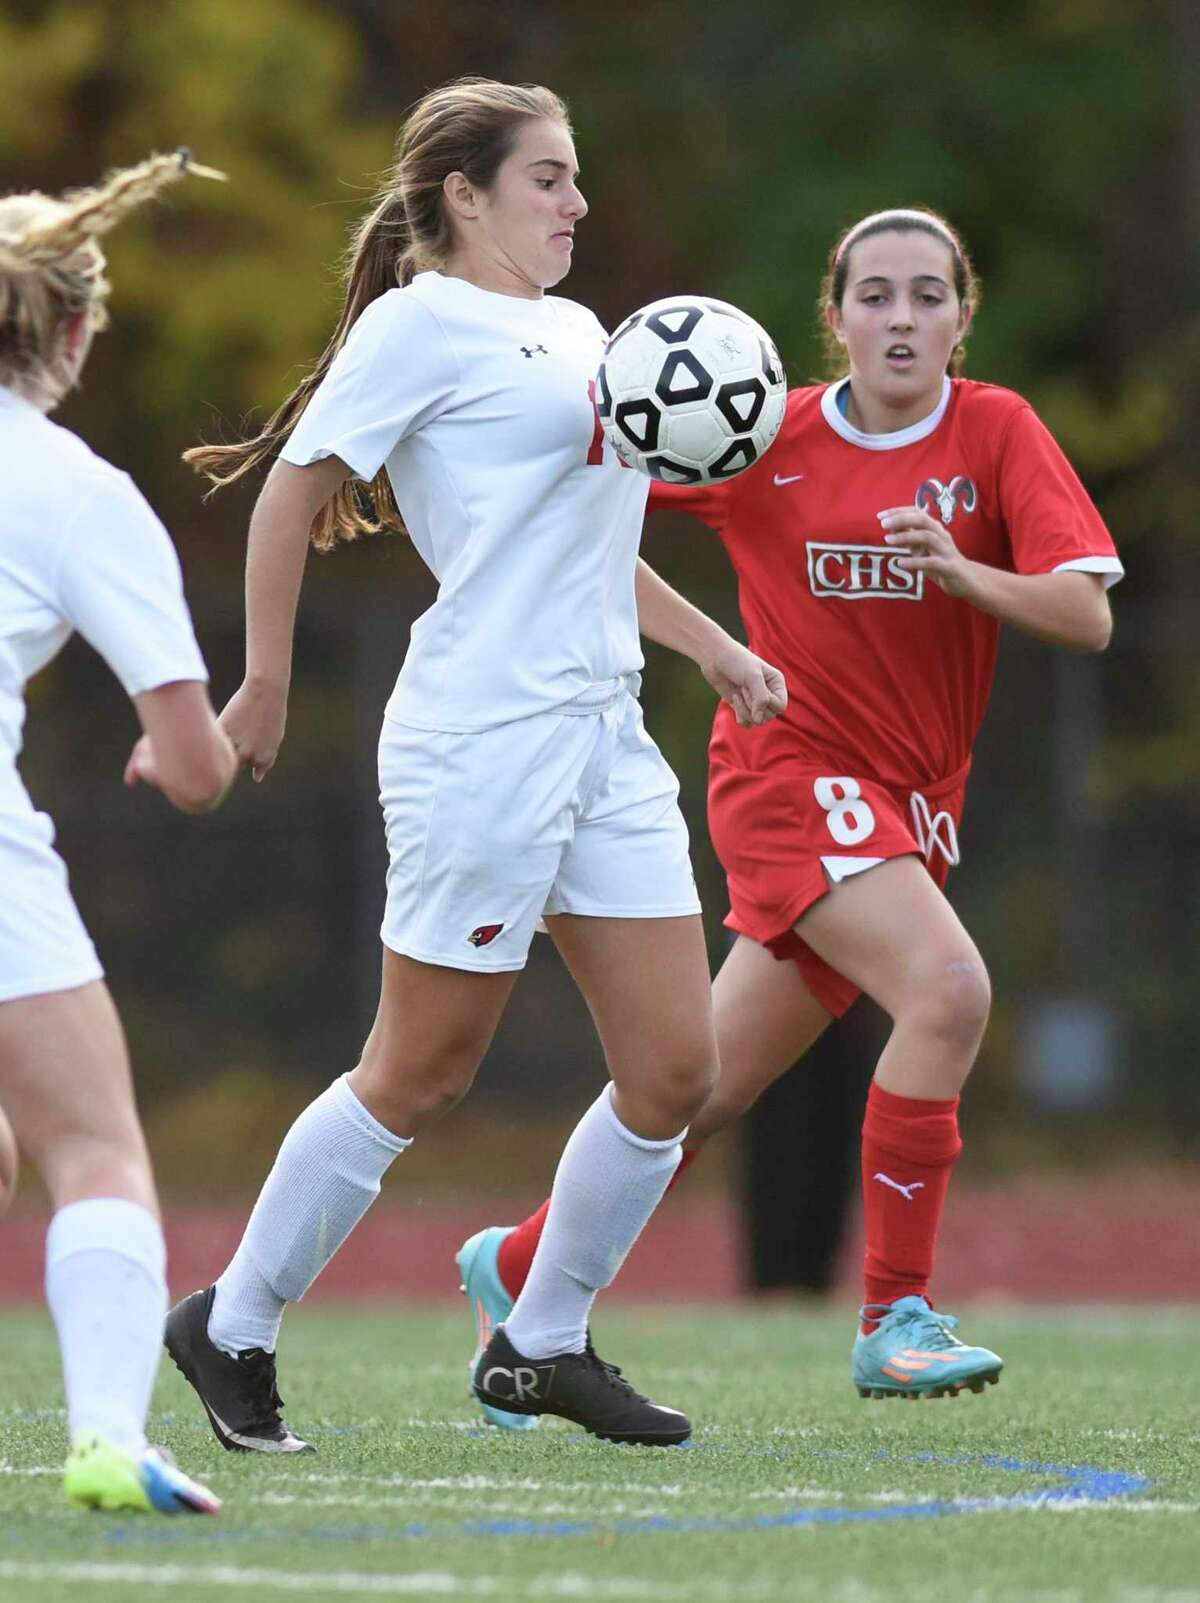 Greenwich's Emily Berzolla, center, controls the ball in front of Cheshire's Kaitlyn Loura in No. 8 Greenwich's 2-1 win over No. 25 Cheshire in the CIAC Class LL high school girls state soccer tournament first-round game at Greenwich High School in Greenwich in 2015. Berzolla, a recent MIT graduate, is one of 30 candidates up for the NCAA Woman of the Year award.